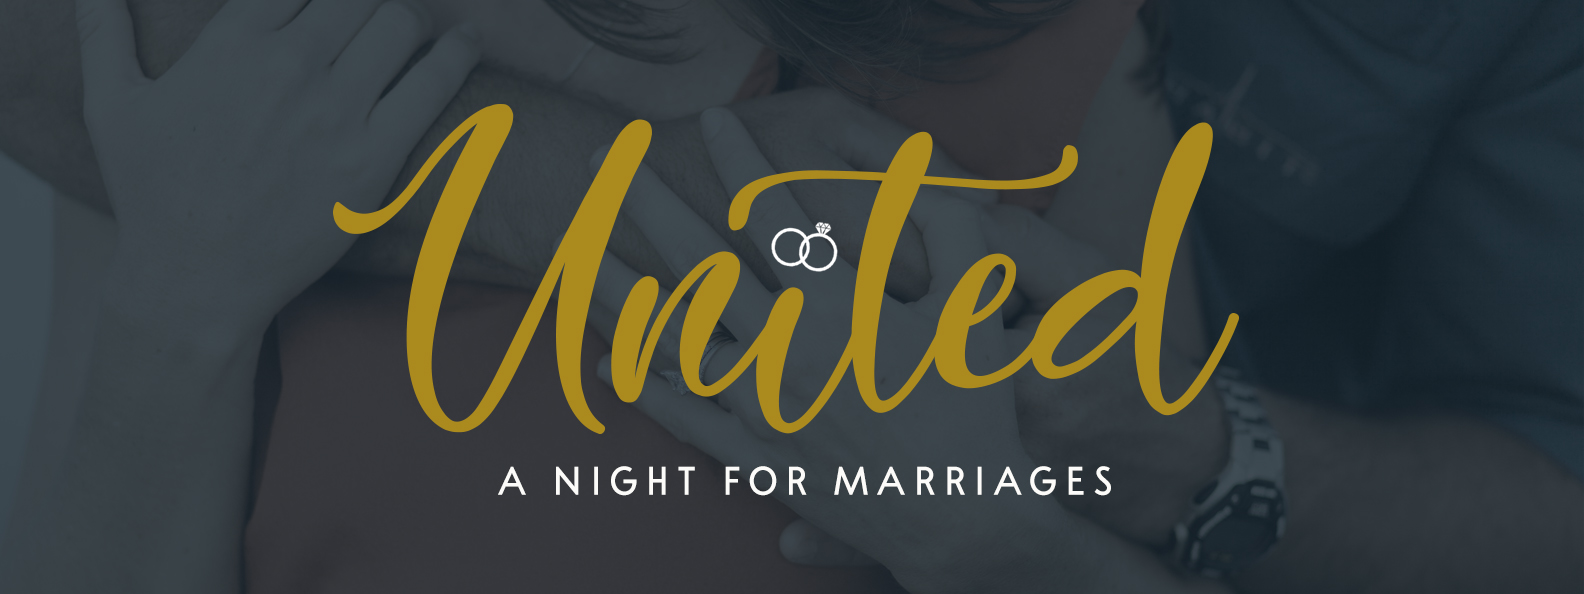 United: A Night for Marriages